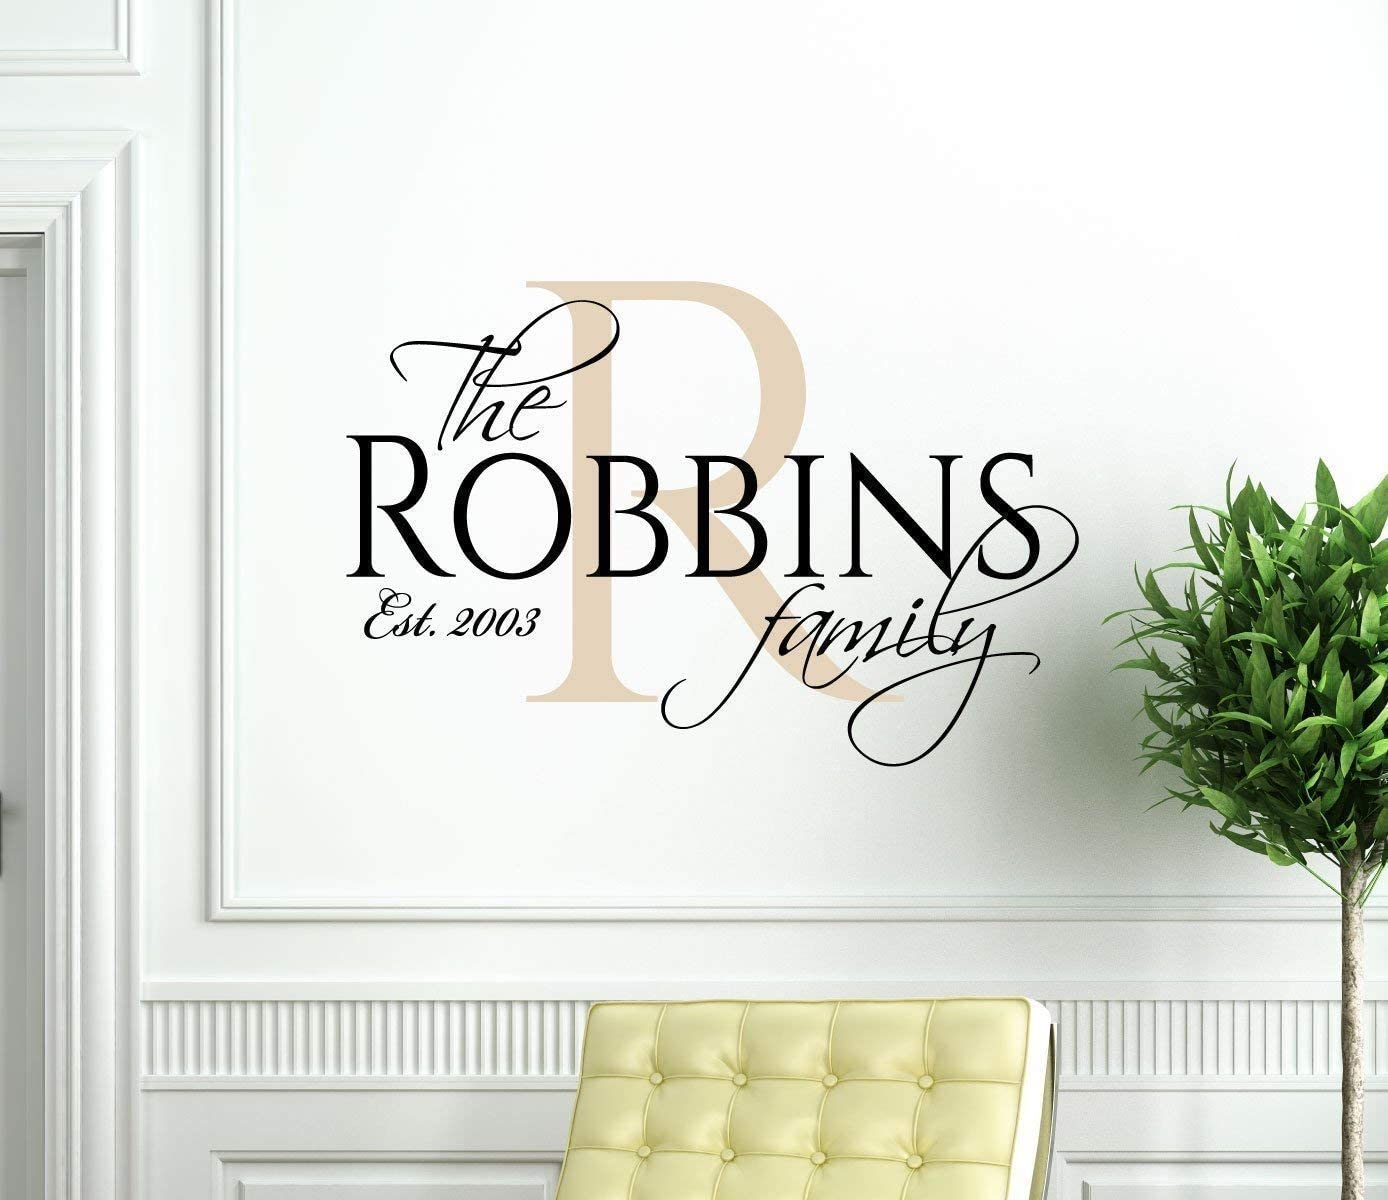 Personalized Family Name Wall Decals of Premium Vinyl stickers for Home and Wall Decor with Established Marriage Year and Monogram Initial - Custom Sizes and Colors Match the Theme of any Living Space